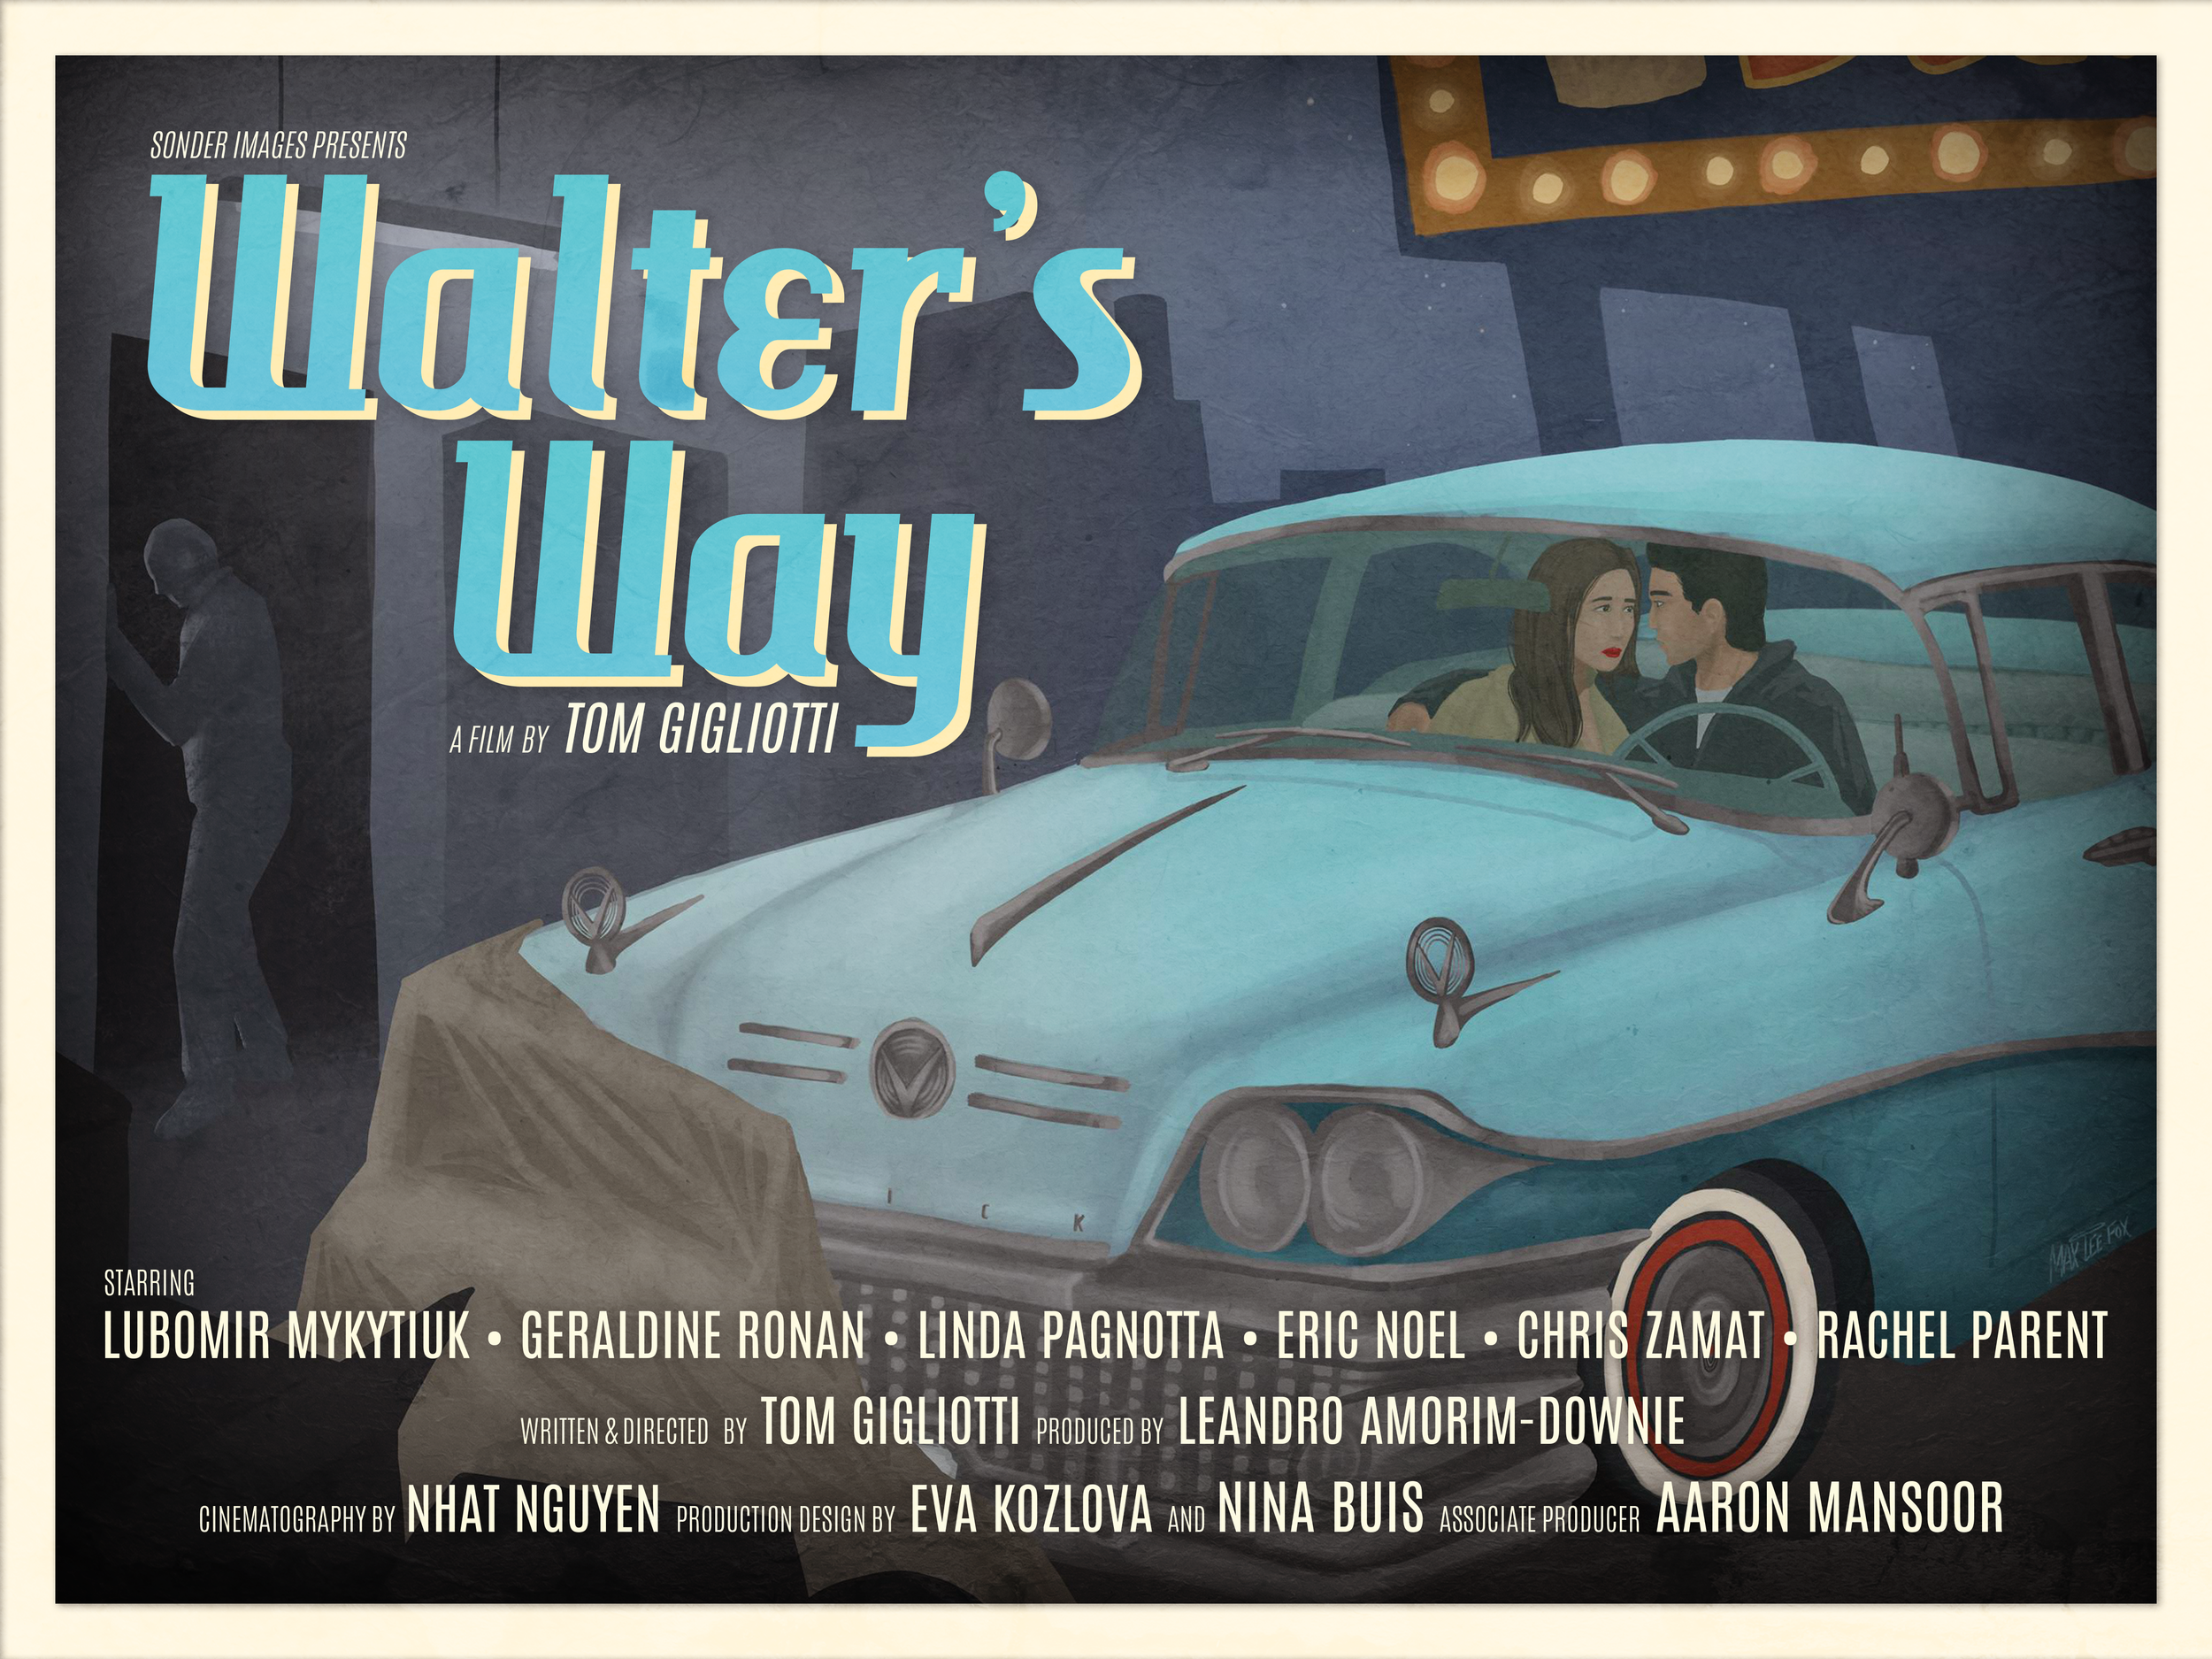 WALTER_Poster_24x18-RGB (PNG).png